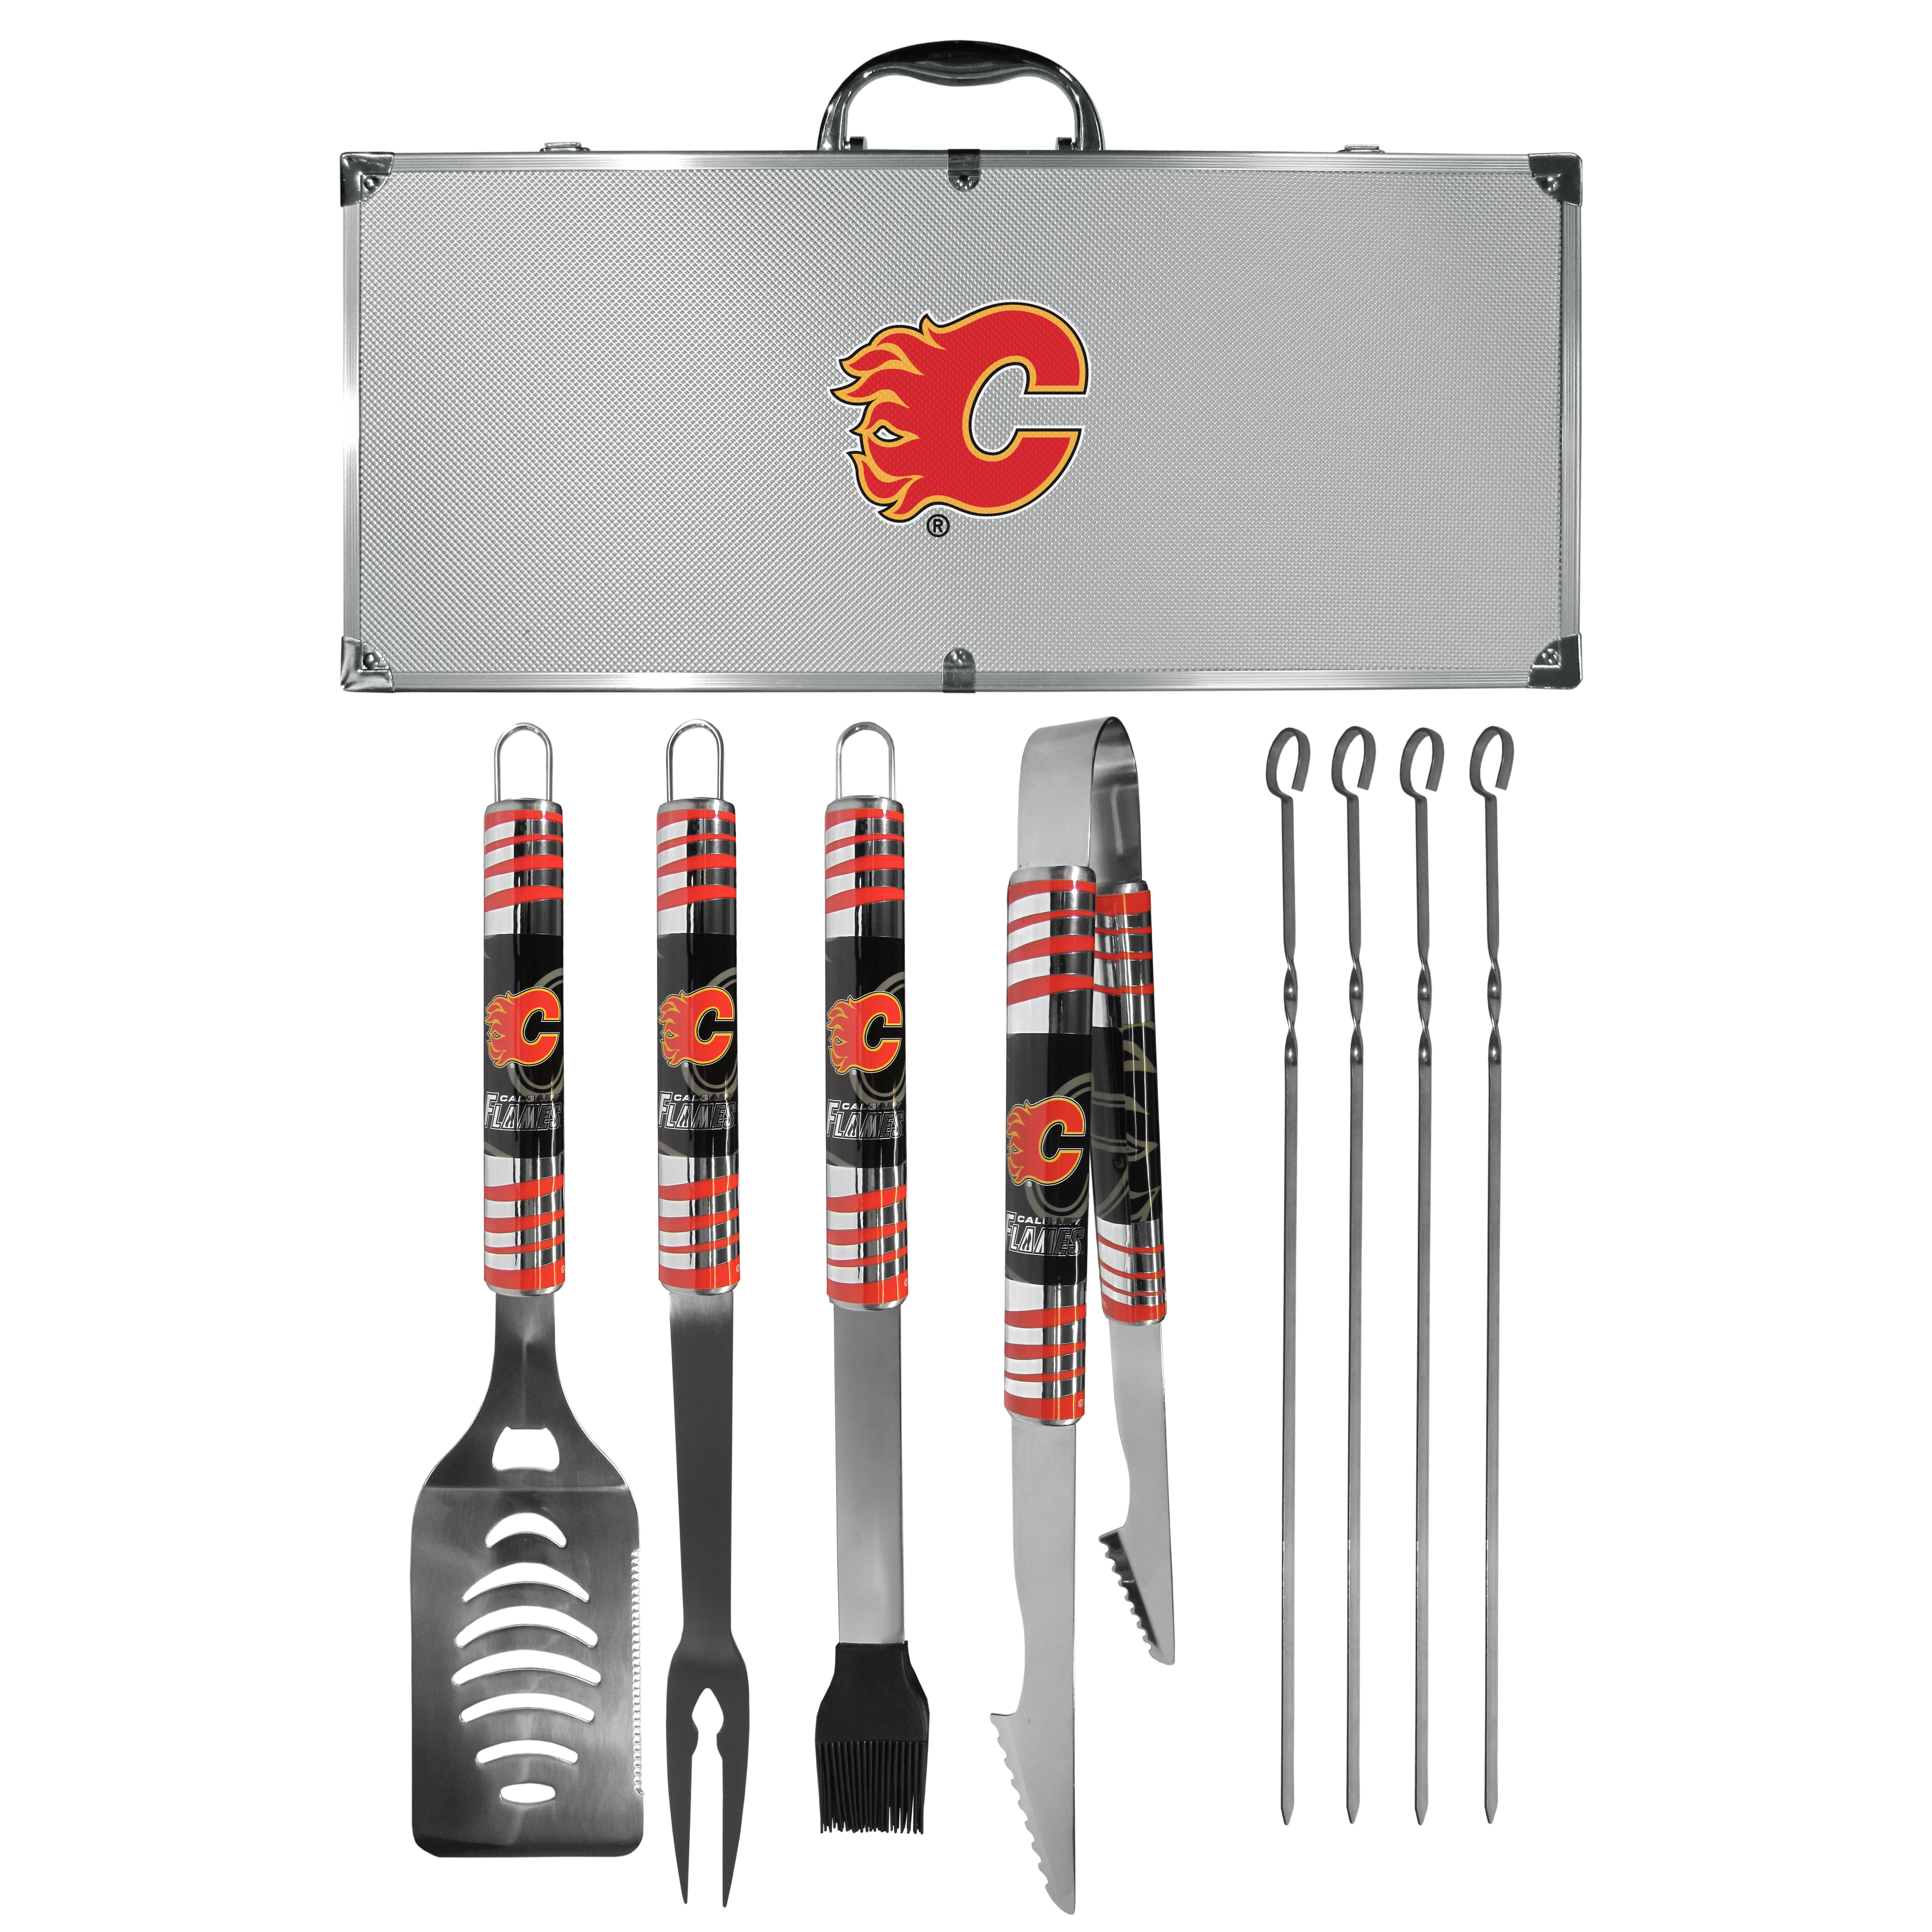 Calgary Flames® 8 pc Tailgater BBQ Set - This is the ultimate Calgary Flames® tailgate accessory! The high quality, 420 grade stainless steel tools are durable and well-made enough to make even the pickiest grill master smile. This complete grill accessory kit includes; 4 skewers, spatula with bottle opener and serrated knife edge, basting brush, tongs and a fork. The 18 inch metal carrying case is perfect for great outdoor use making grilling an ease while camping, tailgating or while having a game day party on your patio. The tools are 17 inches long and feature vivid team graphics. The metal case features a large team emblem with exceptional detail. This high-end men's gift is sure to be a hit as a present on Father's Day or Christmas.